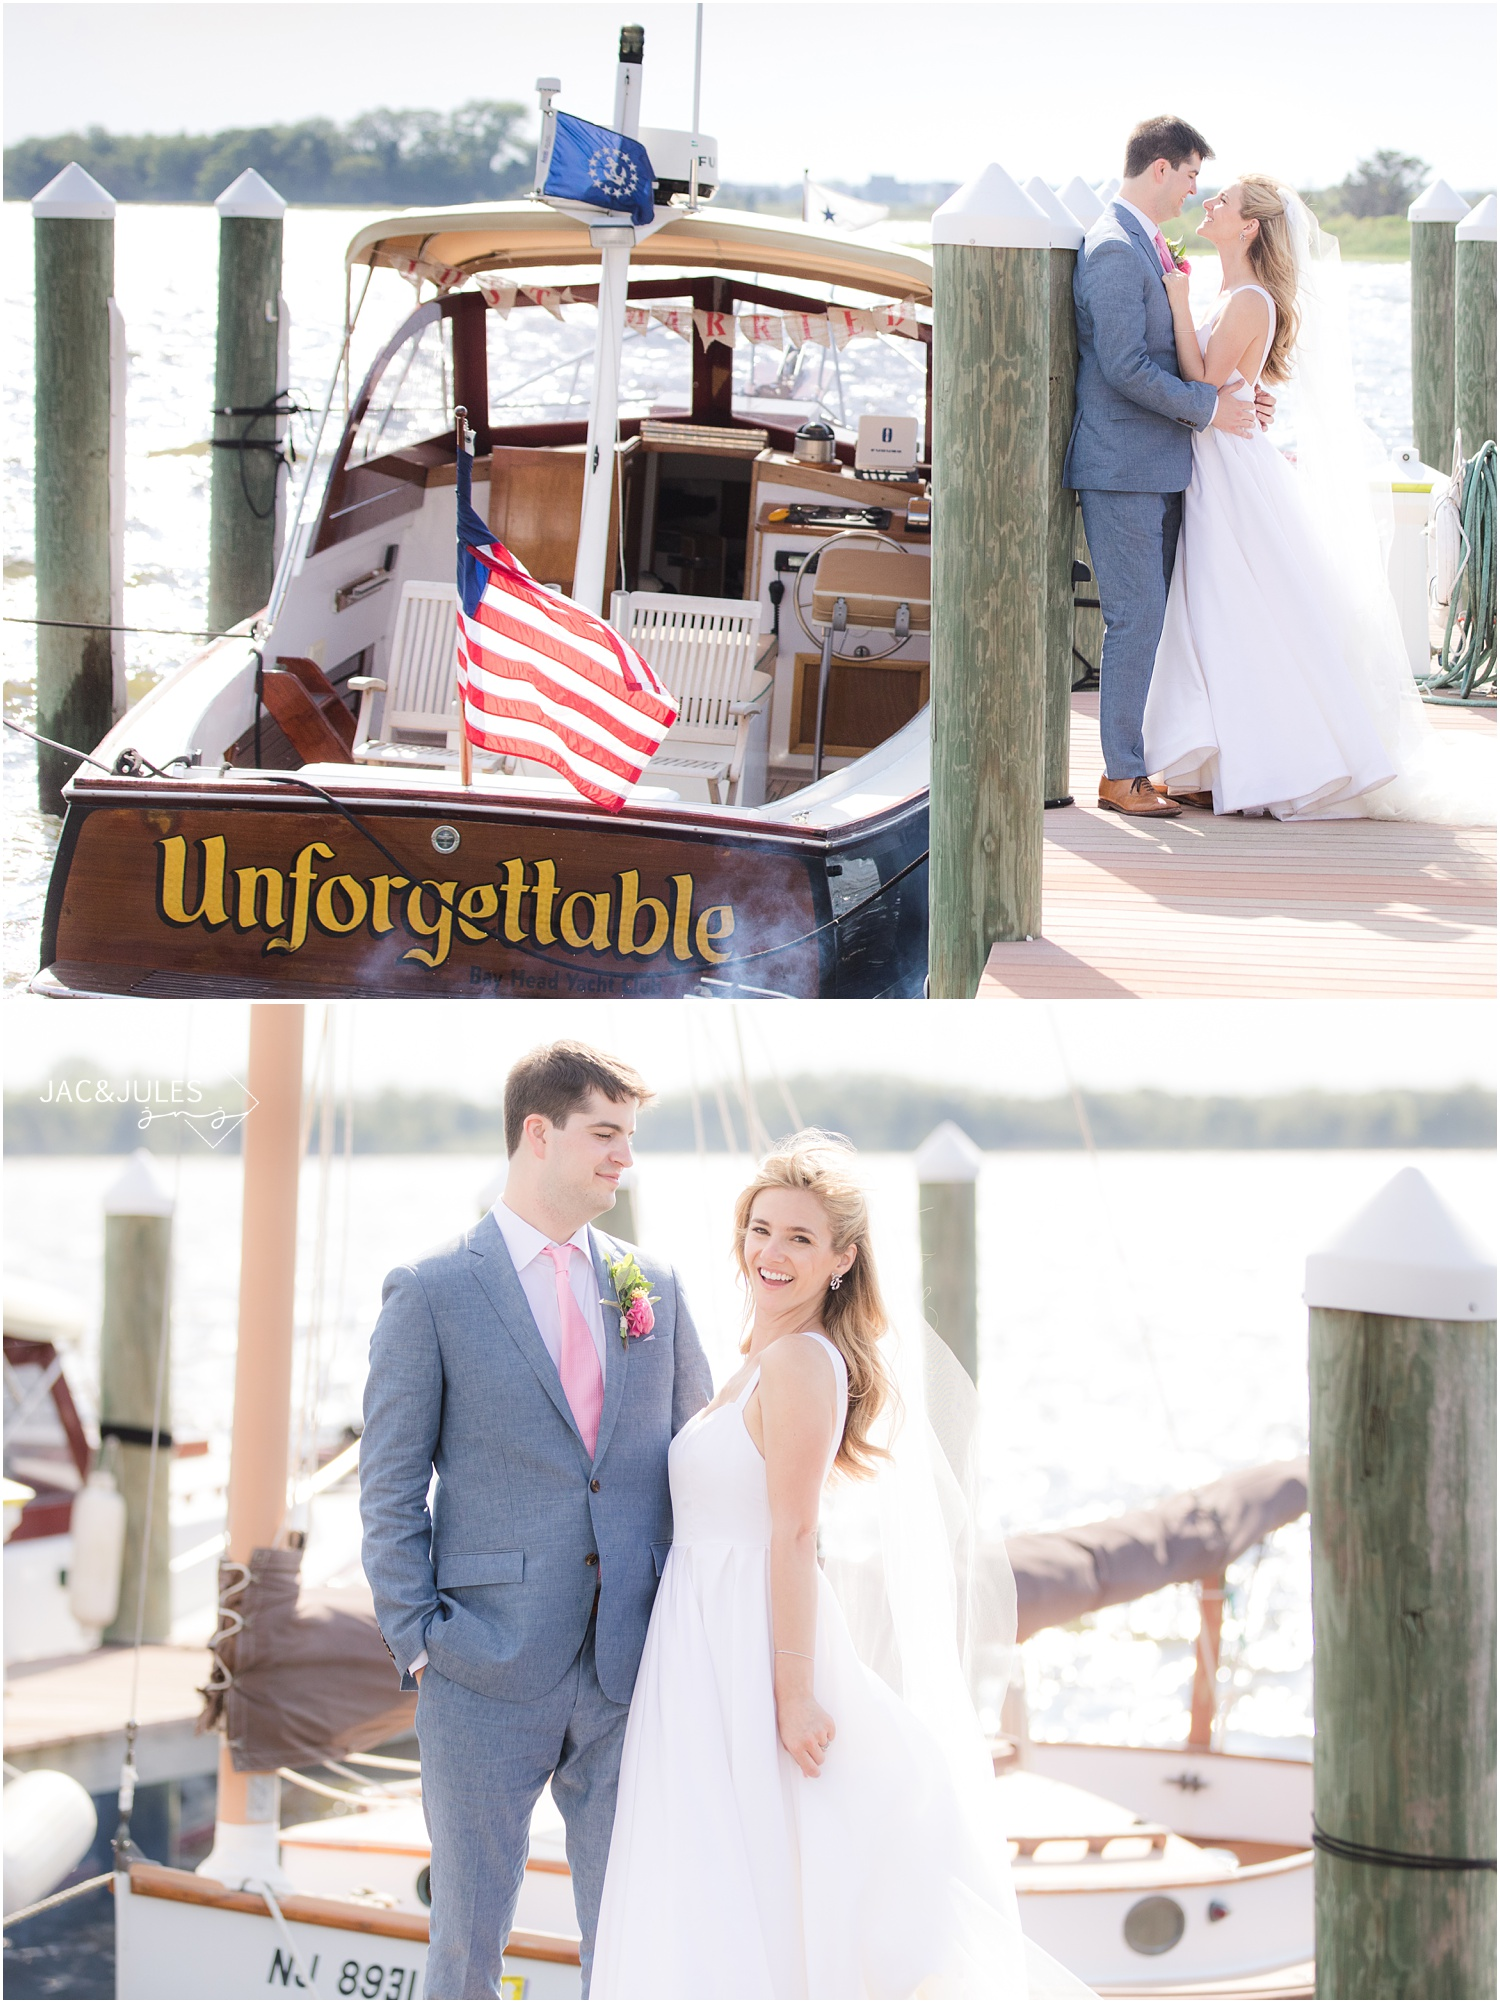 Wedding Photos of bride and groom on a dock with their boat in Mantoloking, NJ.